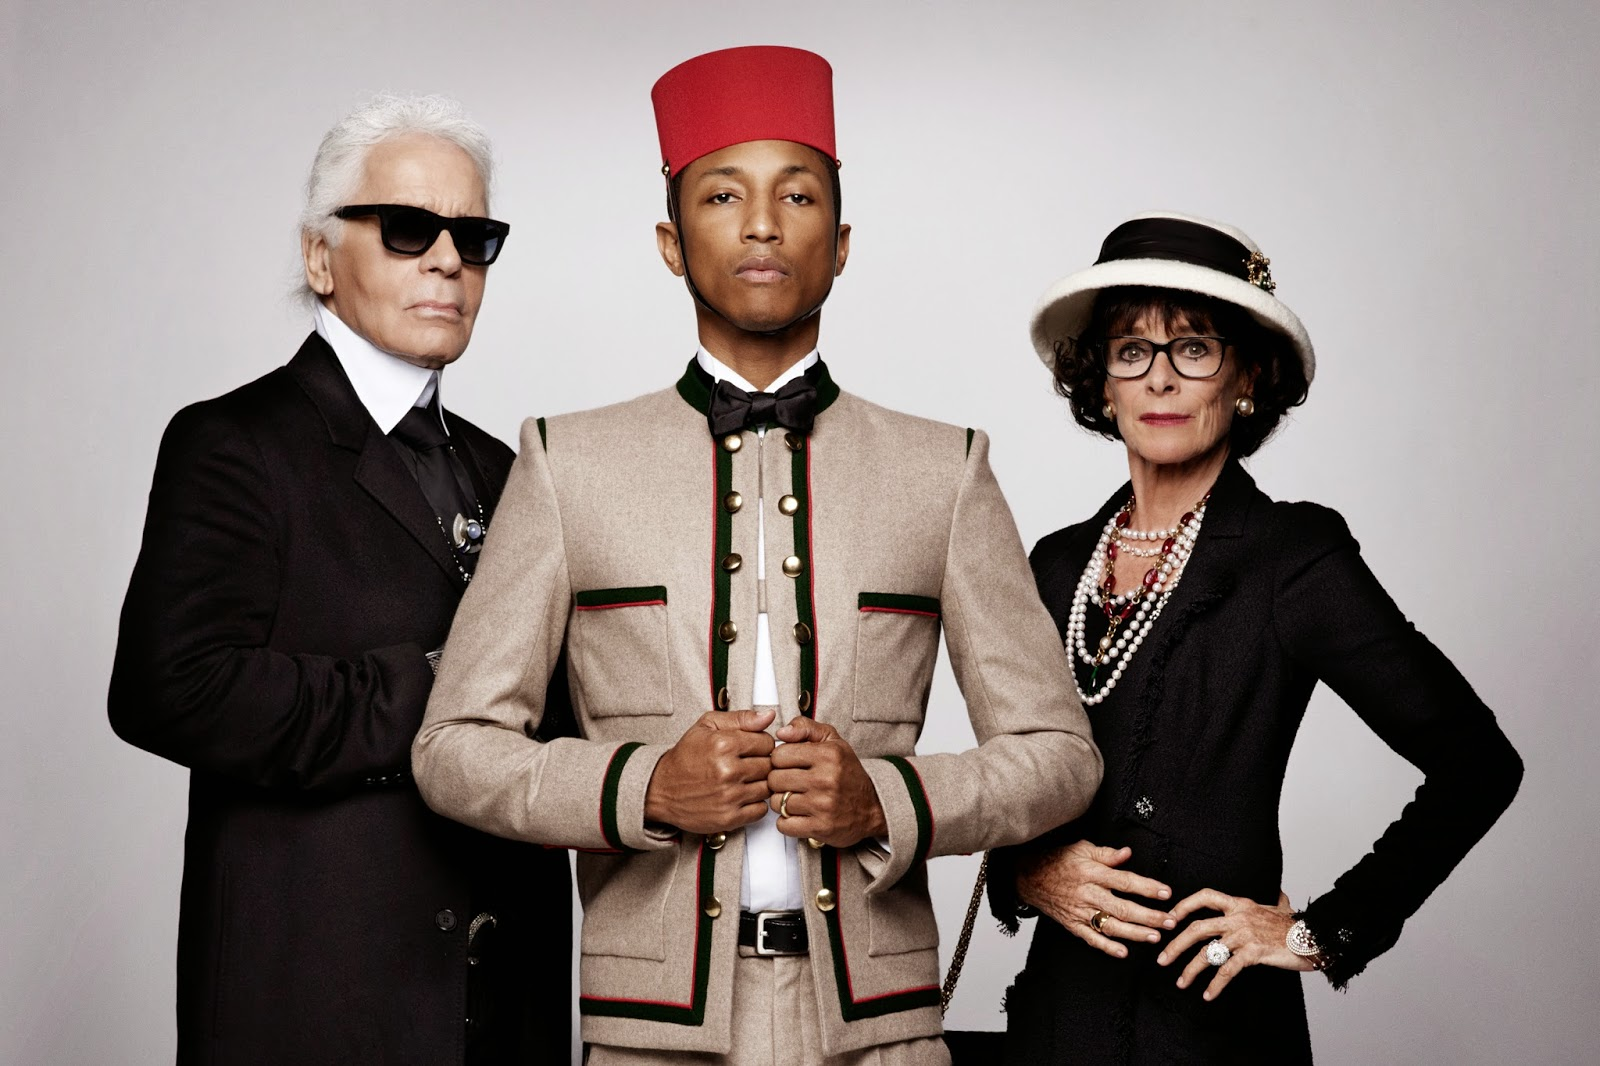 Pharell video teaser 'Reincarnation' by designer Karl Lagerfeld